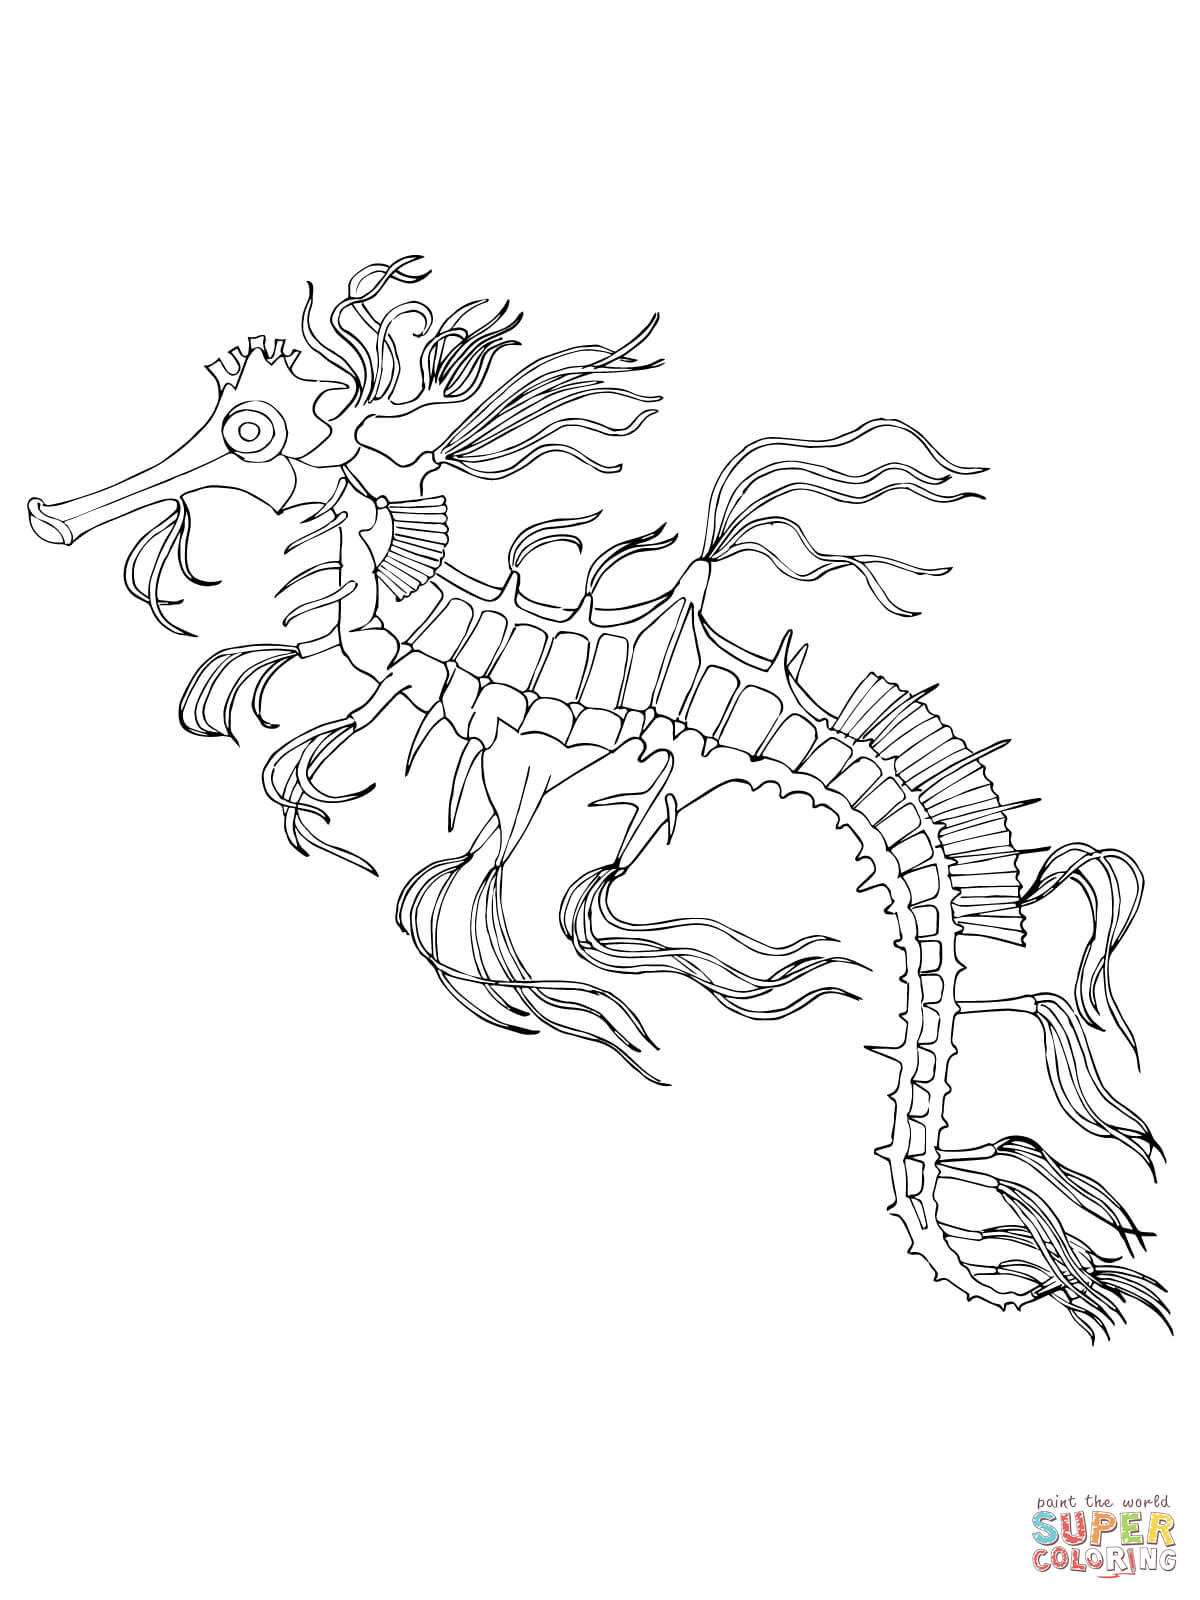 Seahorse coloring pages | Free Coloring Pages